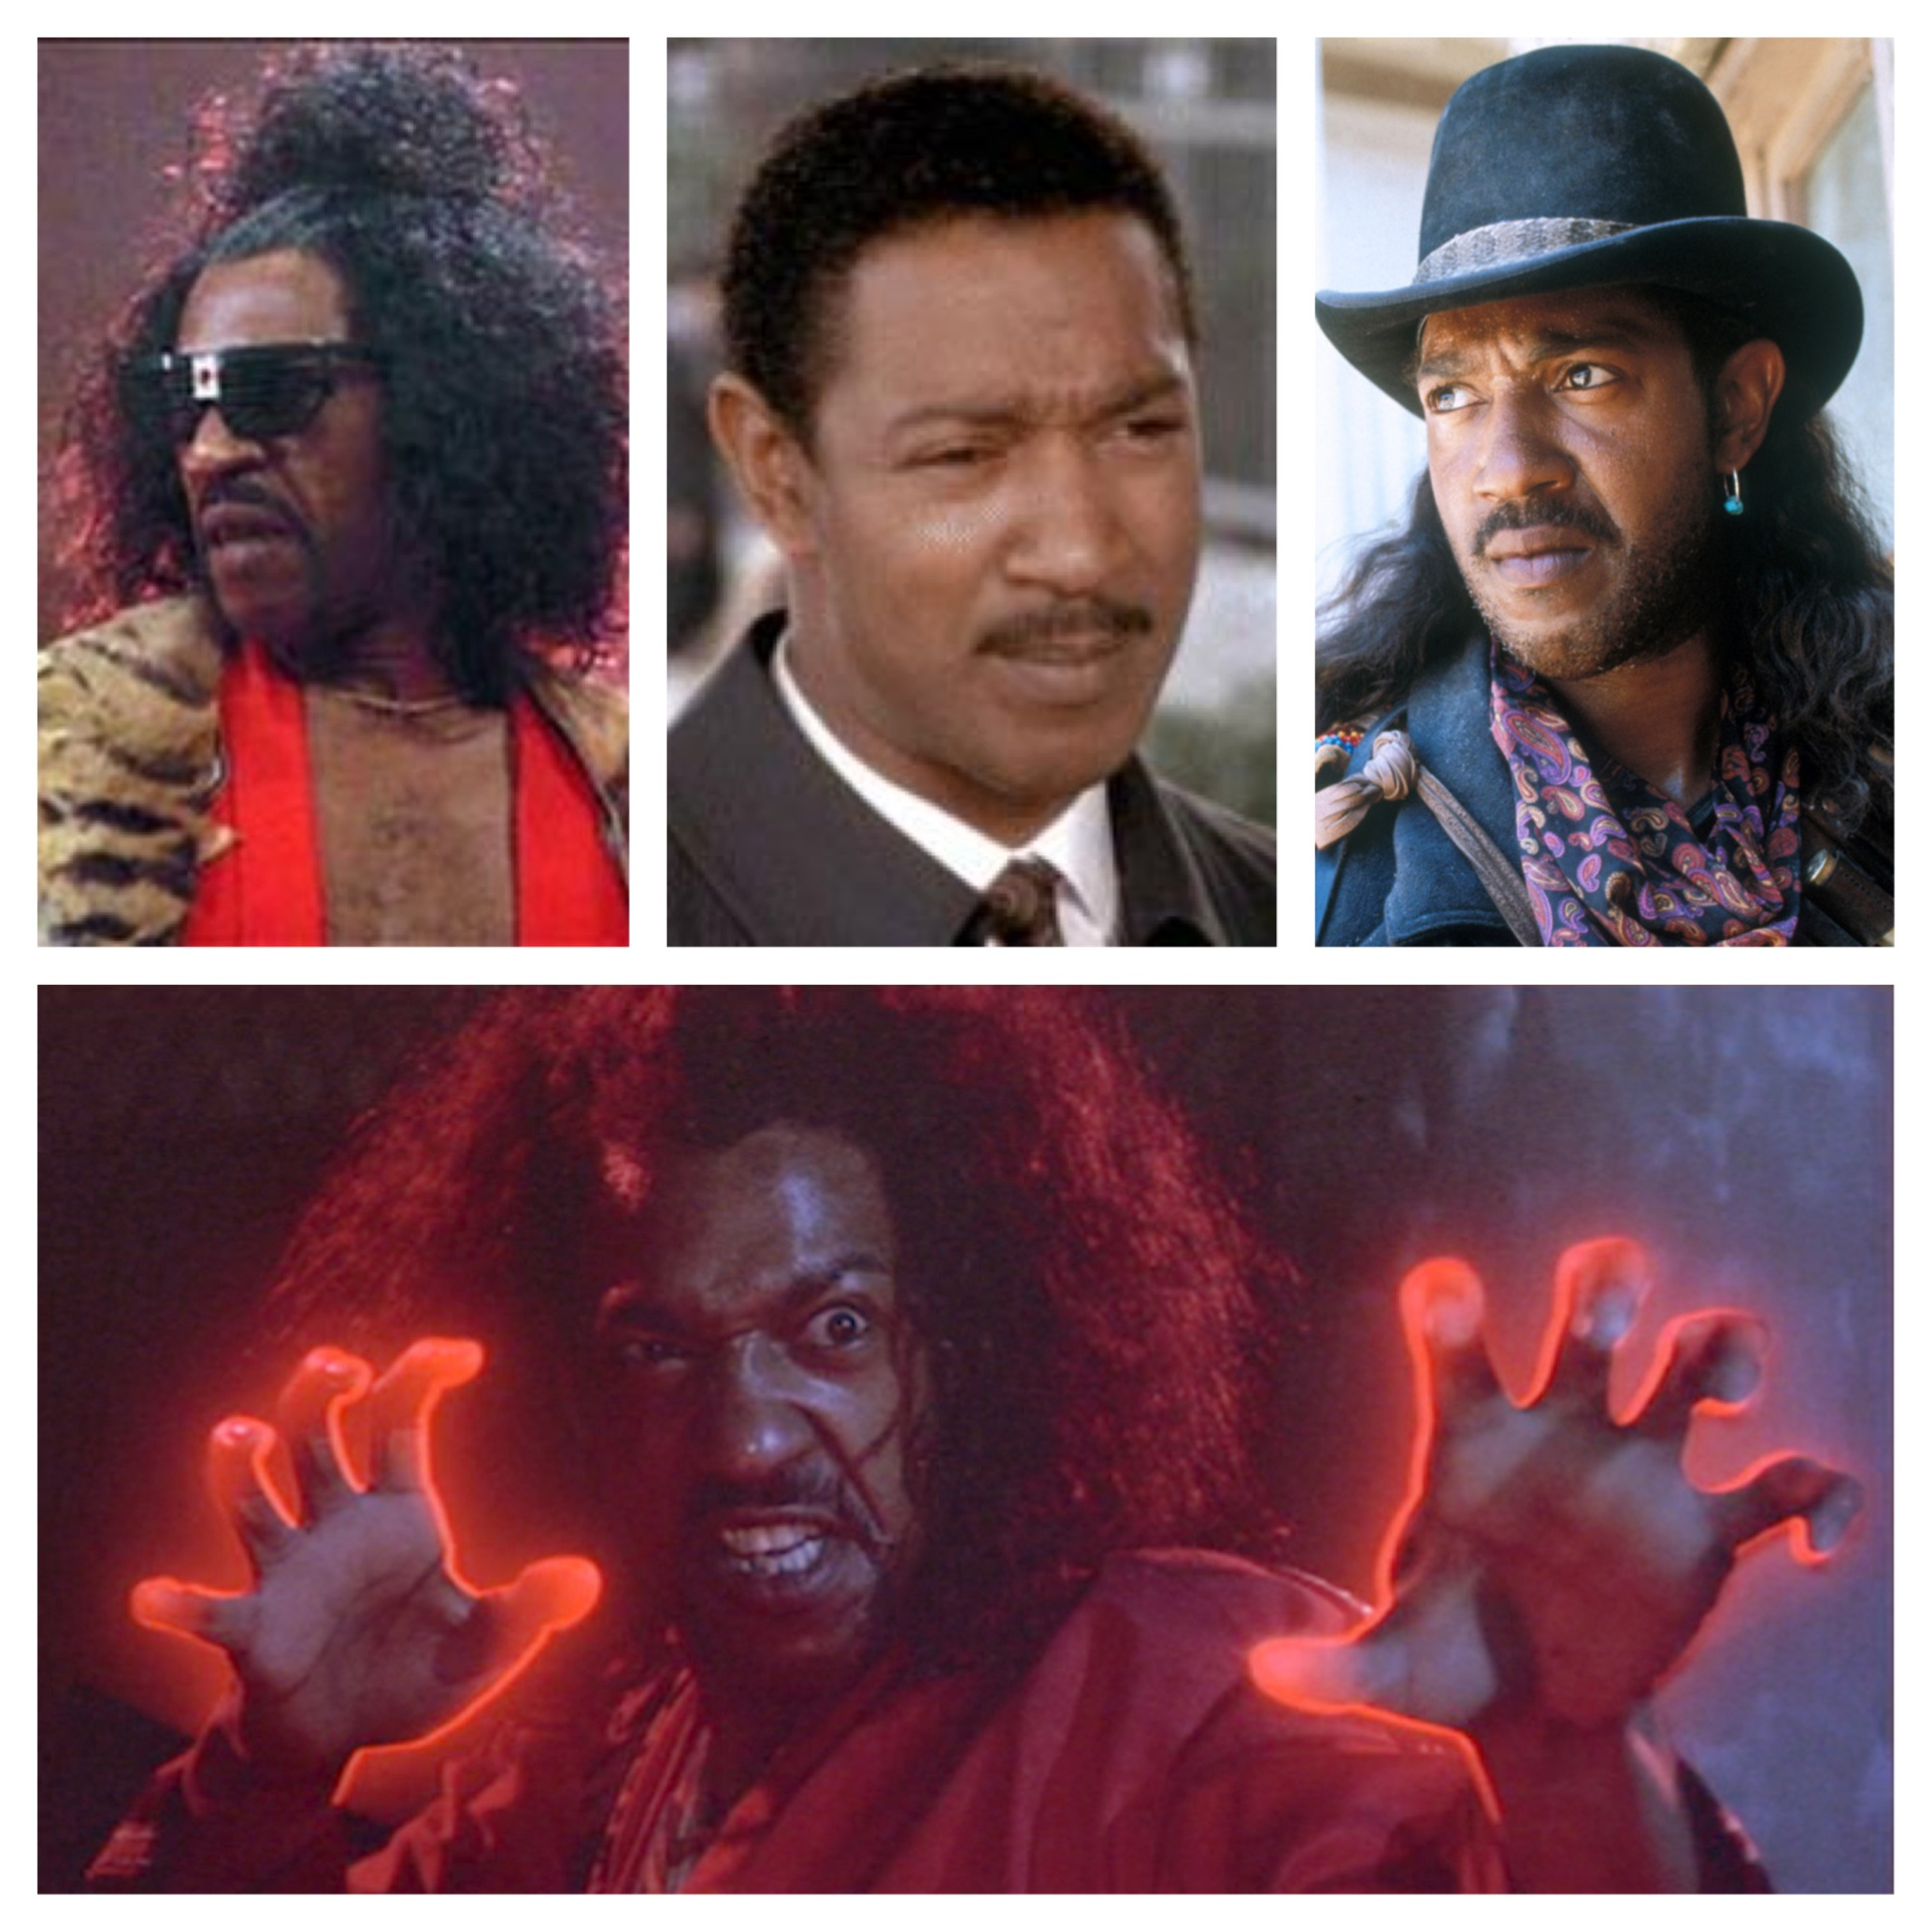 Memories Of Julius Carry From The Cast Of The Last Dragon